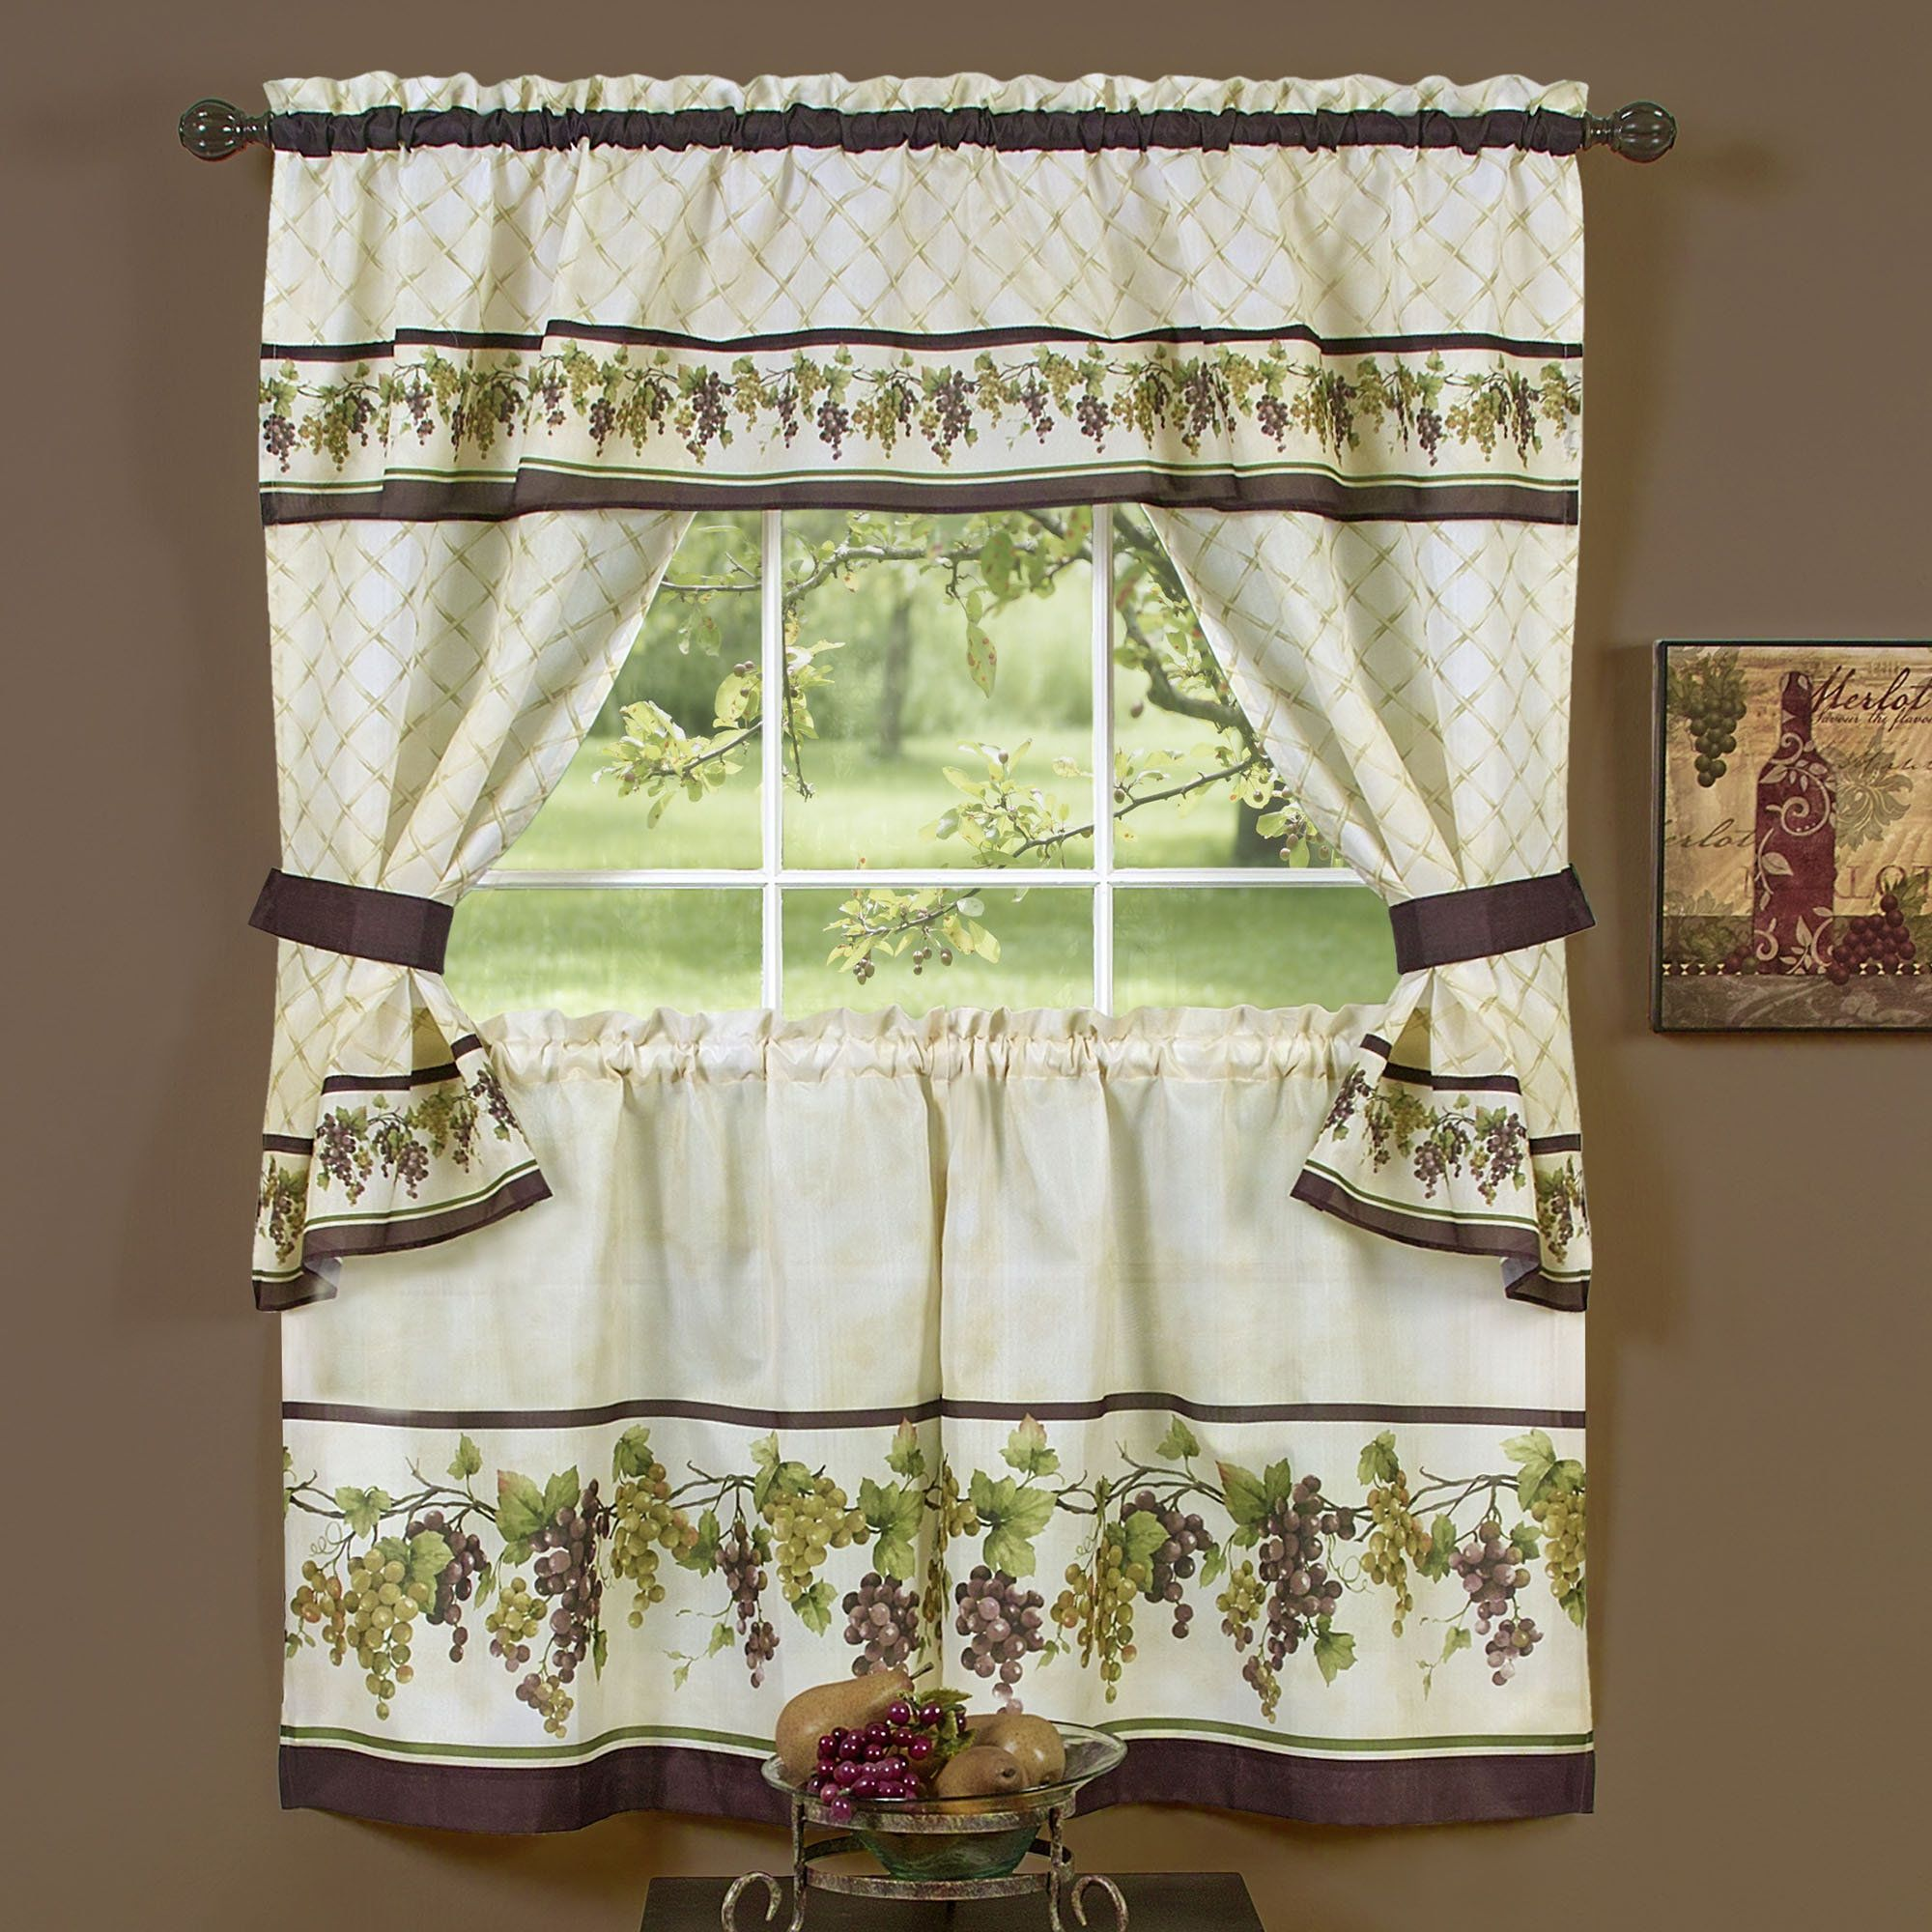 Kitchen Curtains With Grapes Patterned Painted Grapes Kitchen Sinks Photos Of The Canister